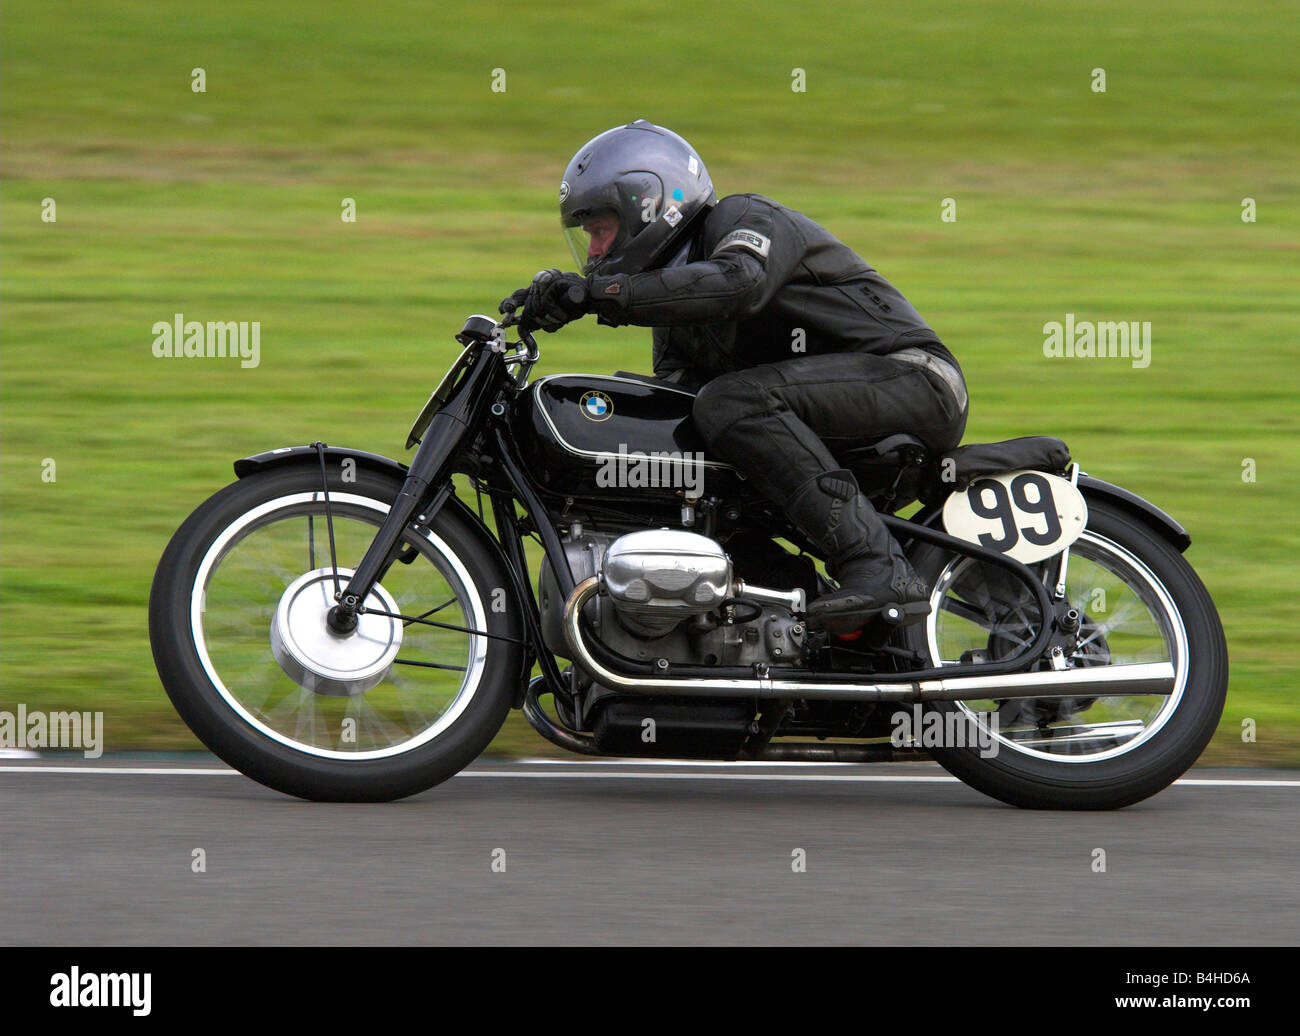 bmw r5 ss classic motorcycle racing stock photo royalty free image 20052546 alamy. Black Bedroom Furniture Sets. Home Design Ideas